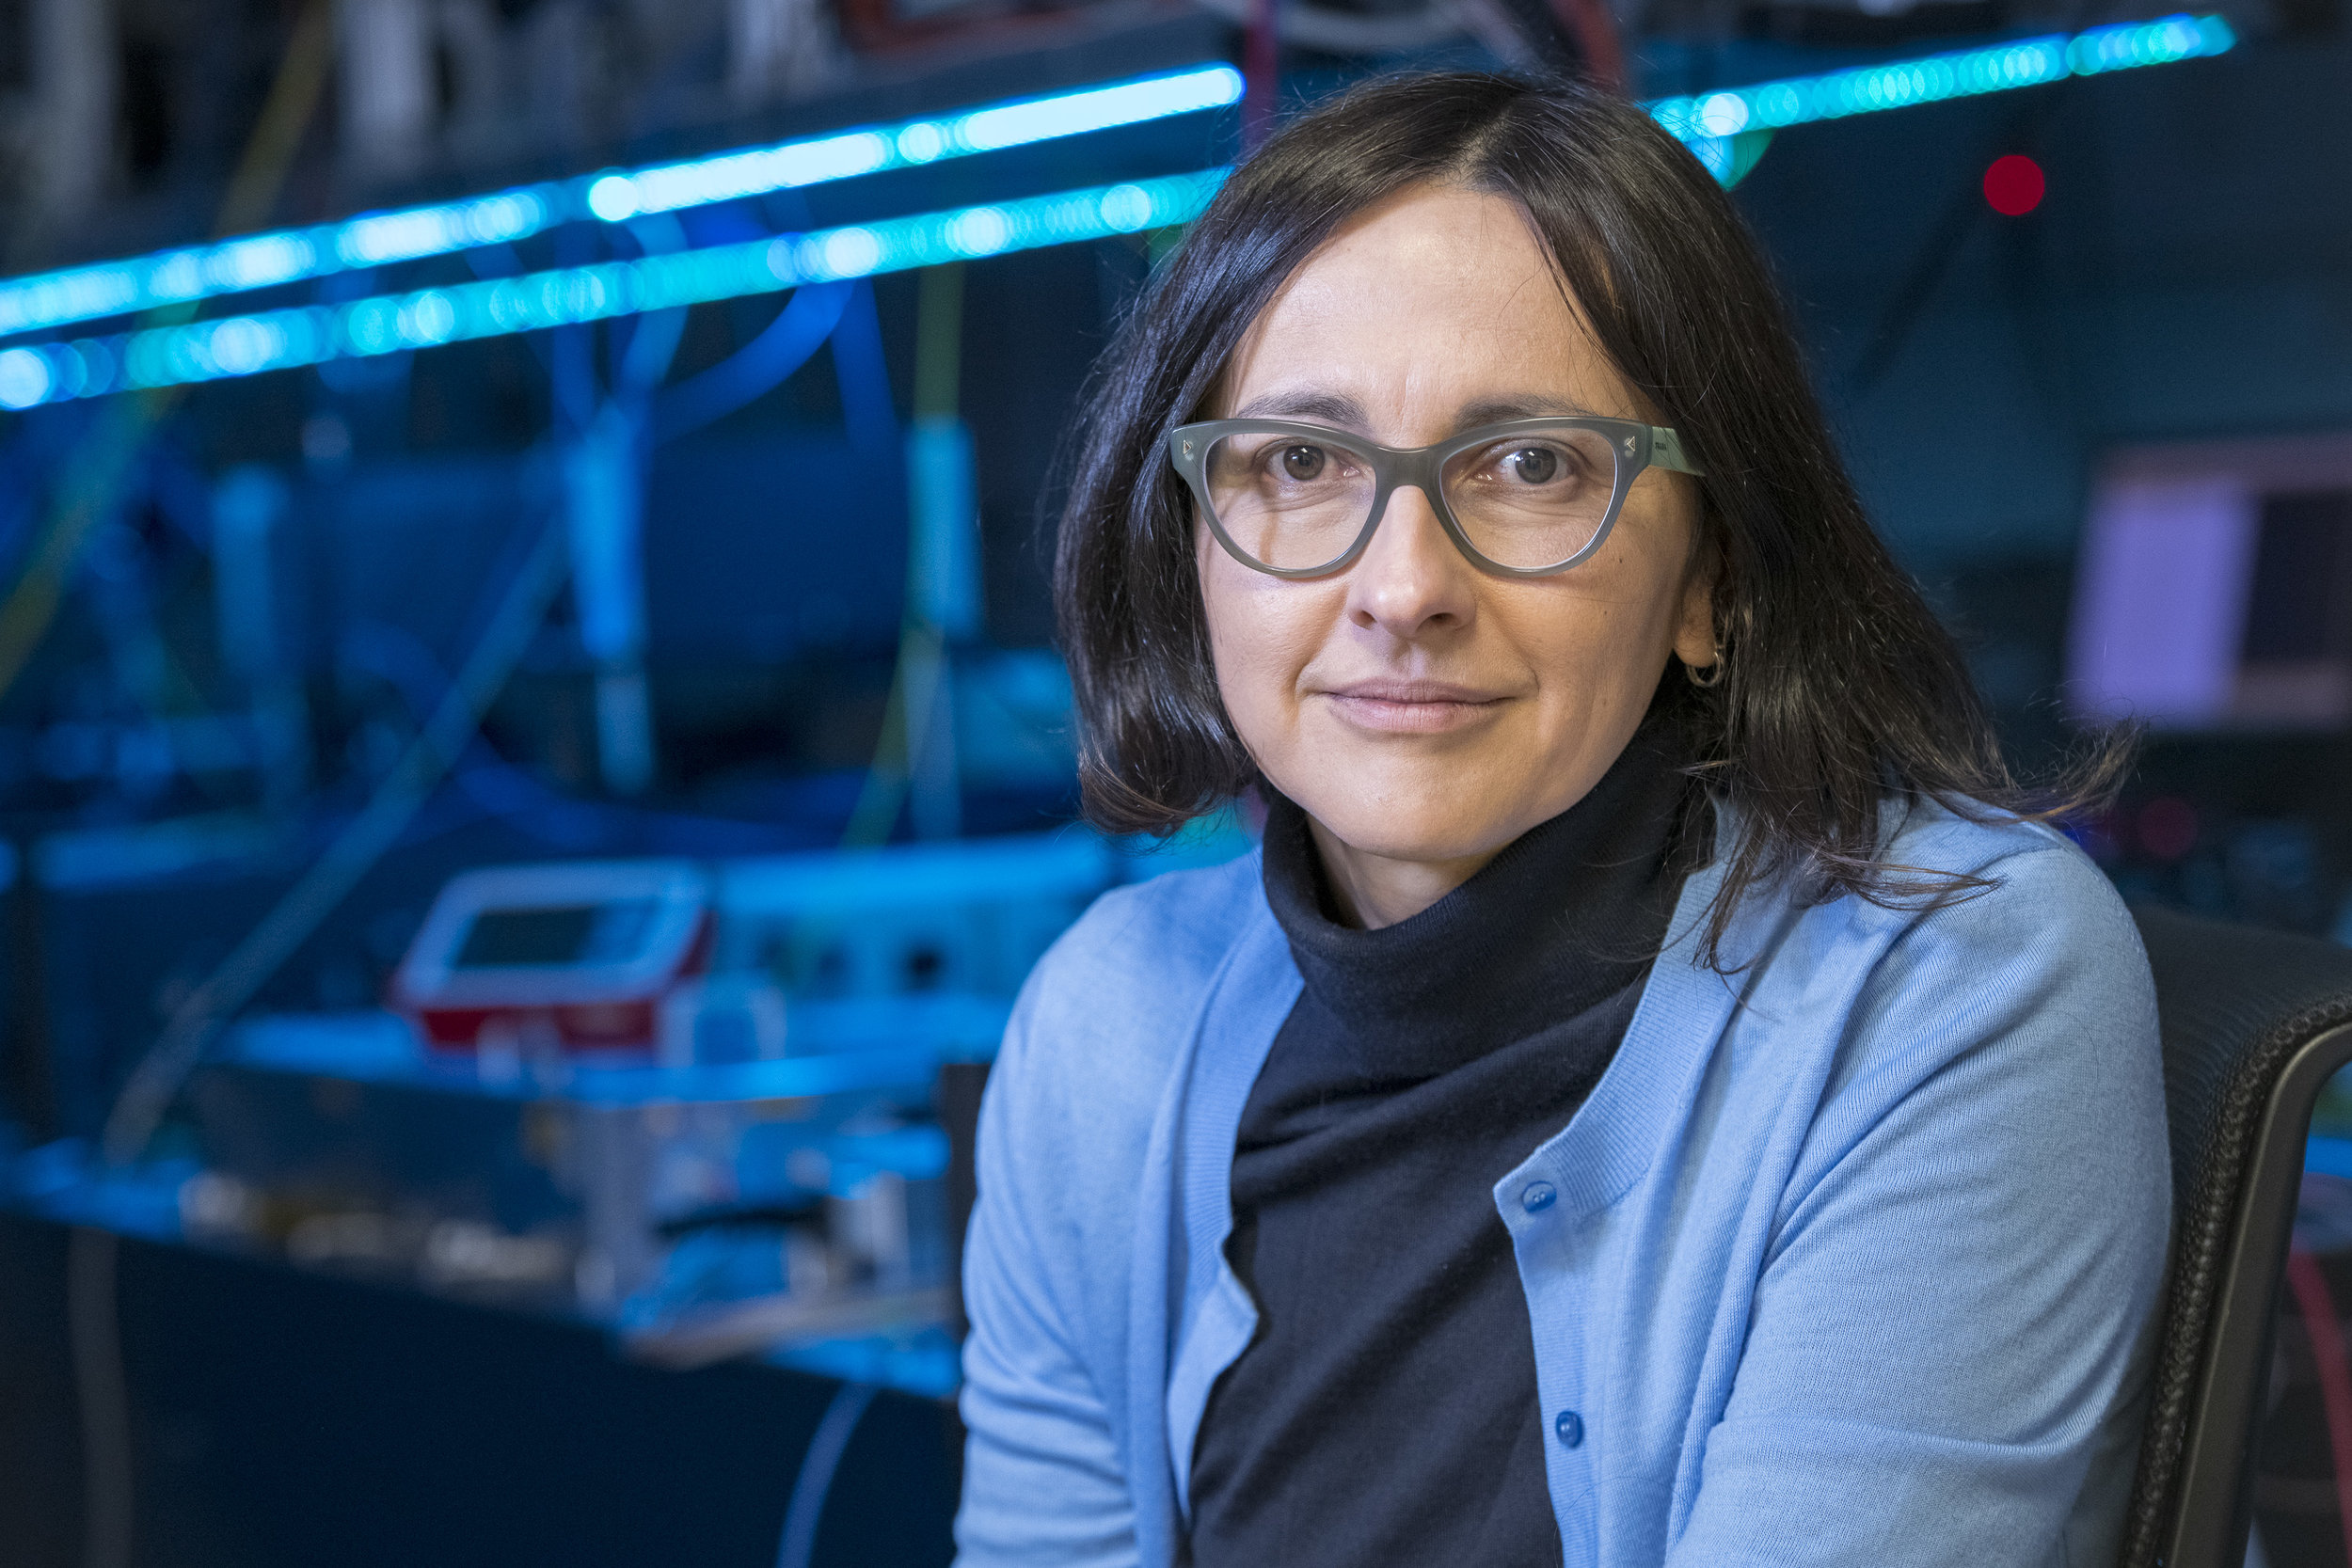 Dr. Jelena Vuckovic (PhD Caltech 2002) is a Professor of Electrical Engineering and by courtesy of Applied Physics at Stanford, where she leads the  Nanoscale and Quantum Photonics Lab . She is also the director of the Q-FARM: the Stanford-SLAC Quantum Initiative. Vuckovic has won numerous prizes including the Humboldt Prize, the Hans Fischer Senior Fellowship, the DARPA Young Faculty Award, the Presidential Early Career Award for Scientists and Engineers, and the Office of Naval Research Young Investigator Award. She is a Distinguished Scholar of the Max Planck Institute for Quantum Optics, Fellow of the American Physical Society (APS), of the Optical Society of America (OSA), and of the Institute of Electronics and Electrical Engineers (IEEE).